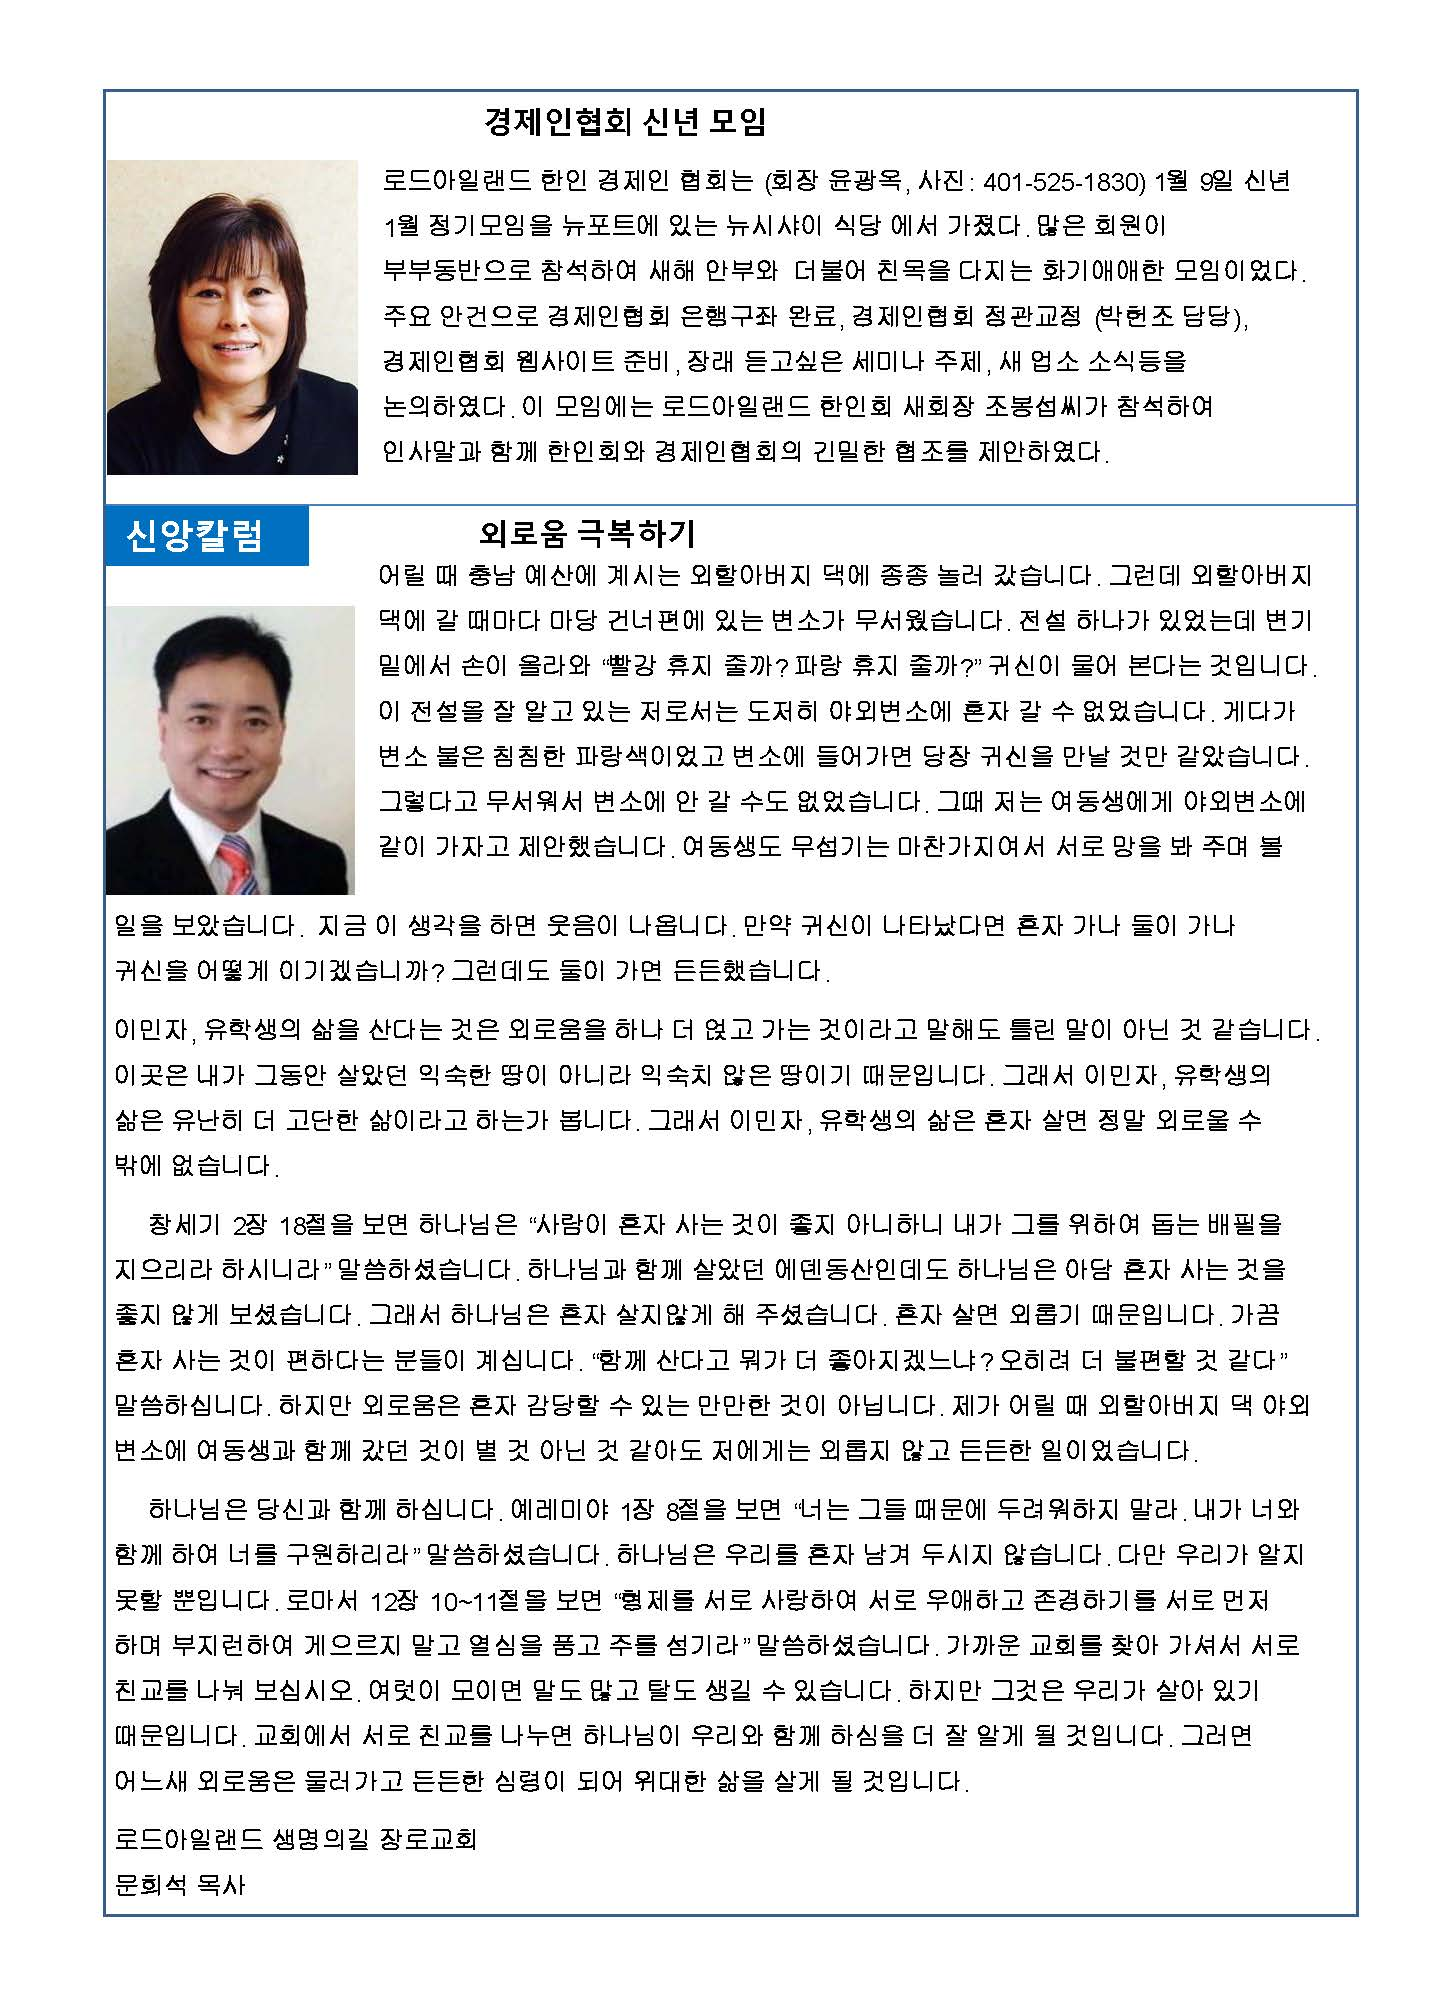 한인회보 2016 Feb 15 FINAL FOR WEB_Page_5.jpg